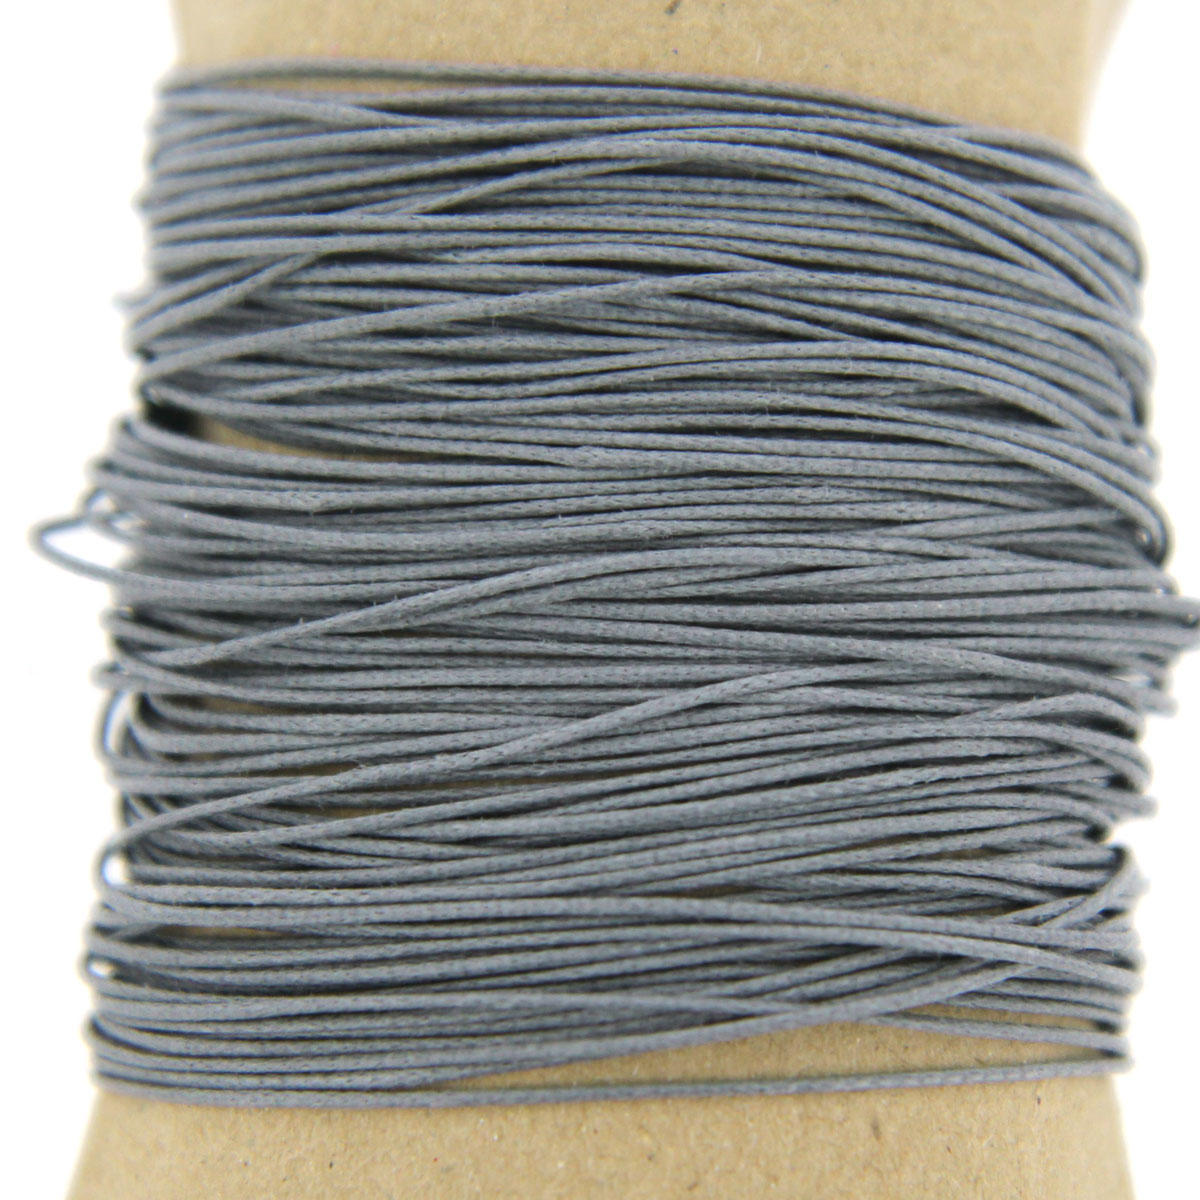 Charcoal Thin 0.7mm Cotton Bead Cord